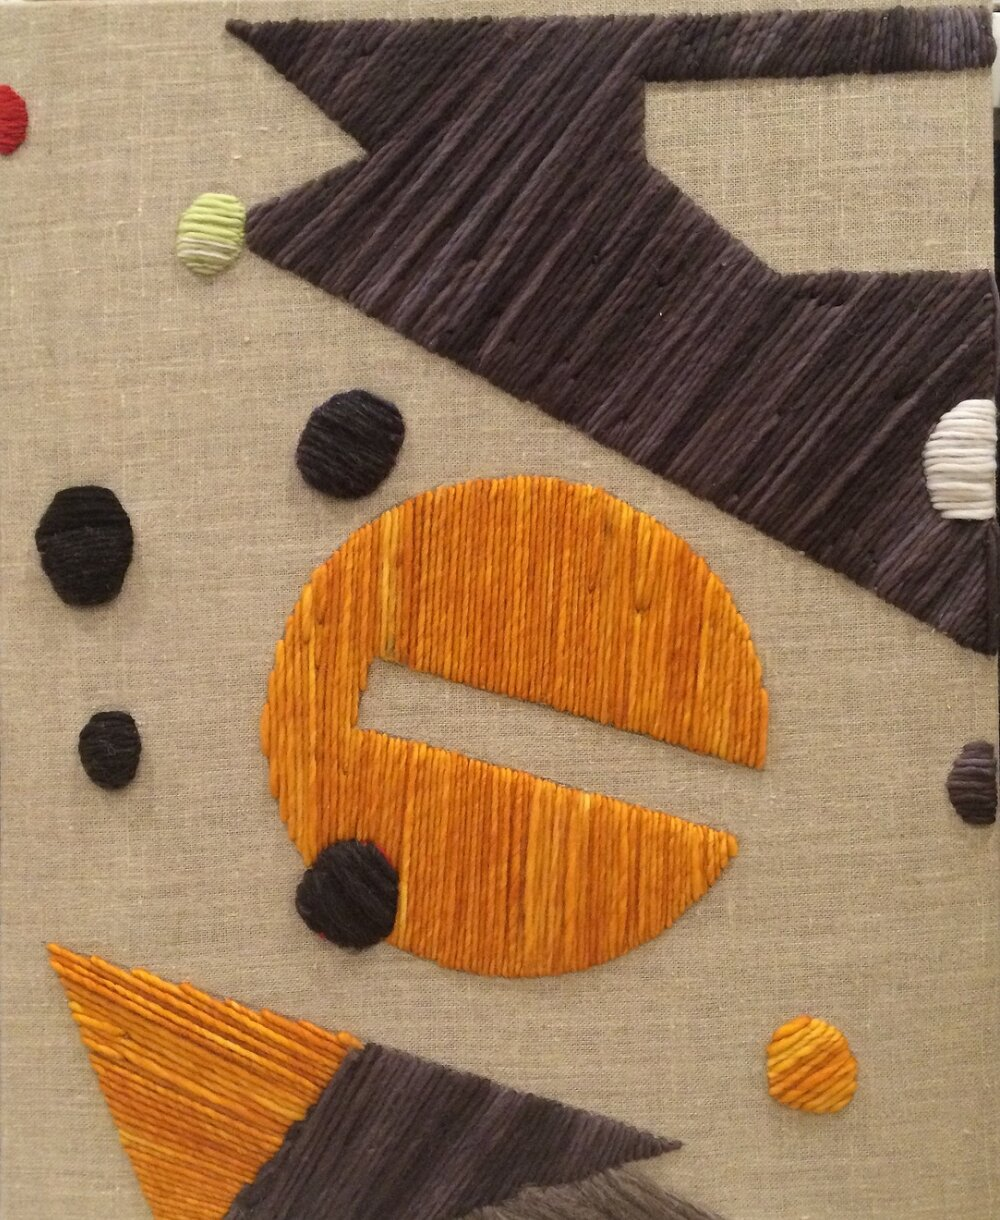 System 8 2017 Wool and Linen on Wood Stretcher 30 x 24 inches